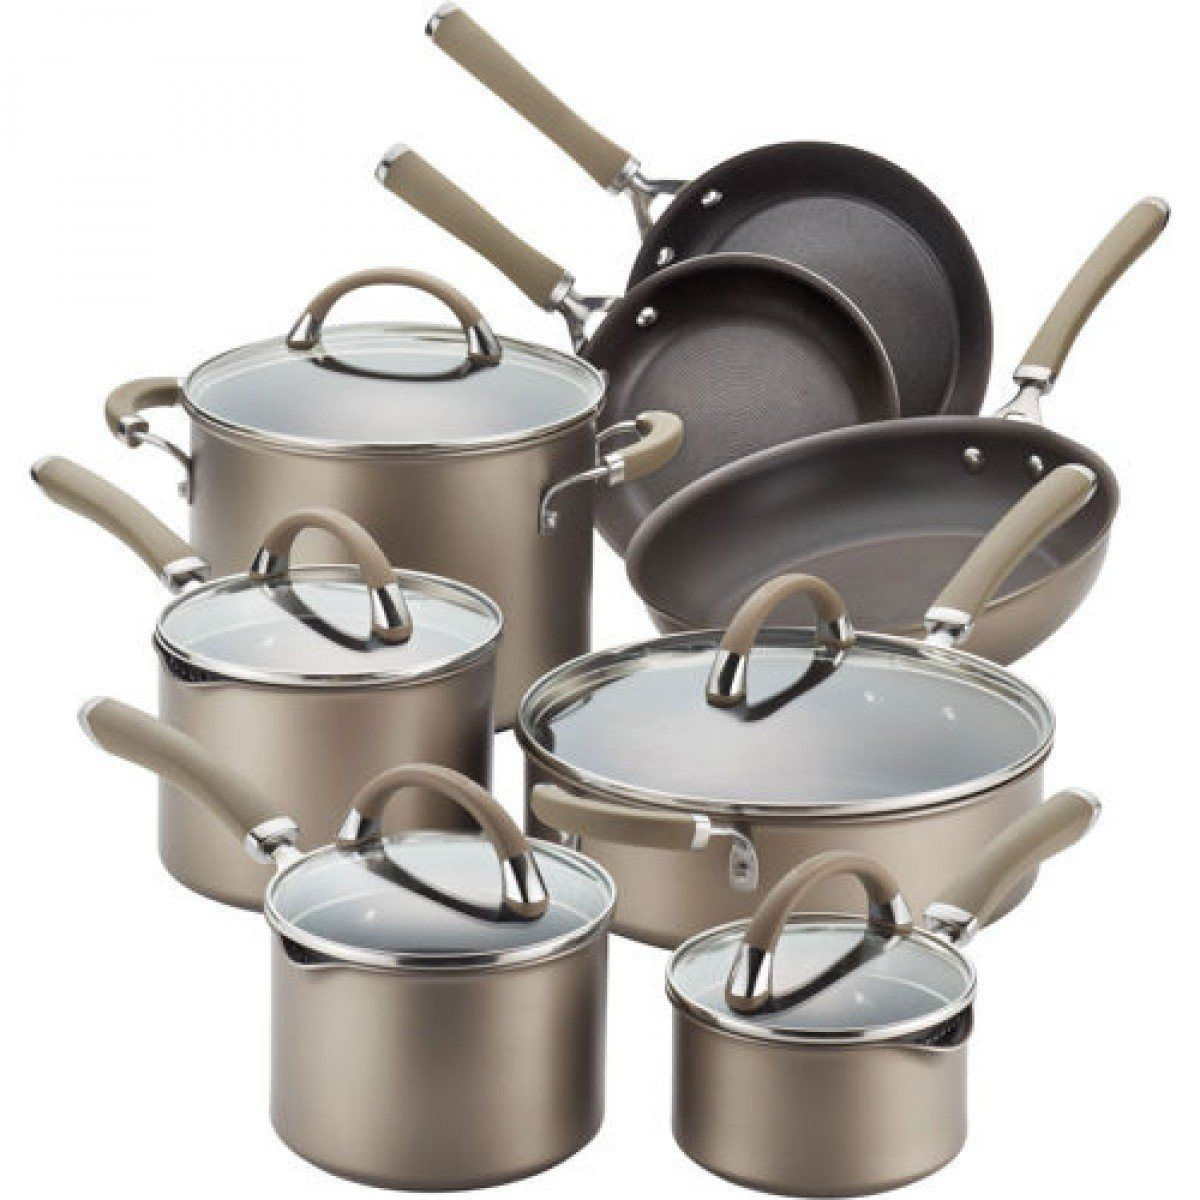 Pots for induction cookers: overview, types, features of choice and reviews